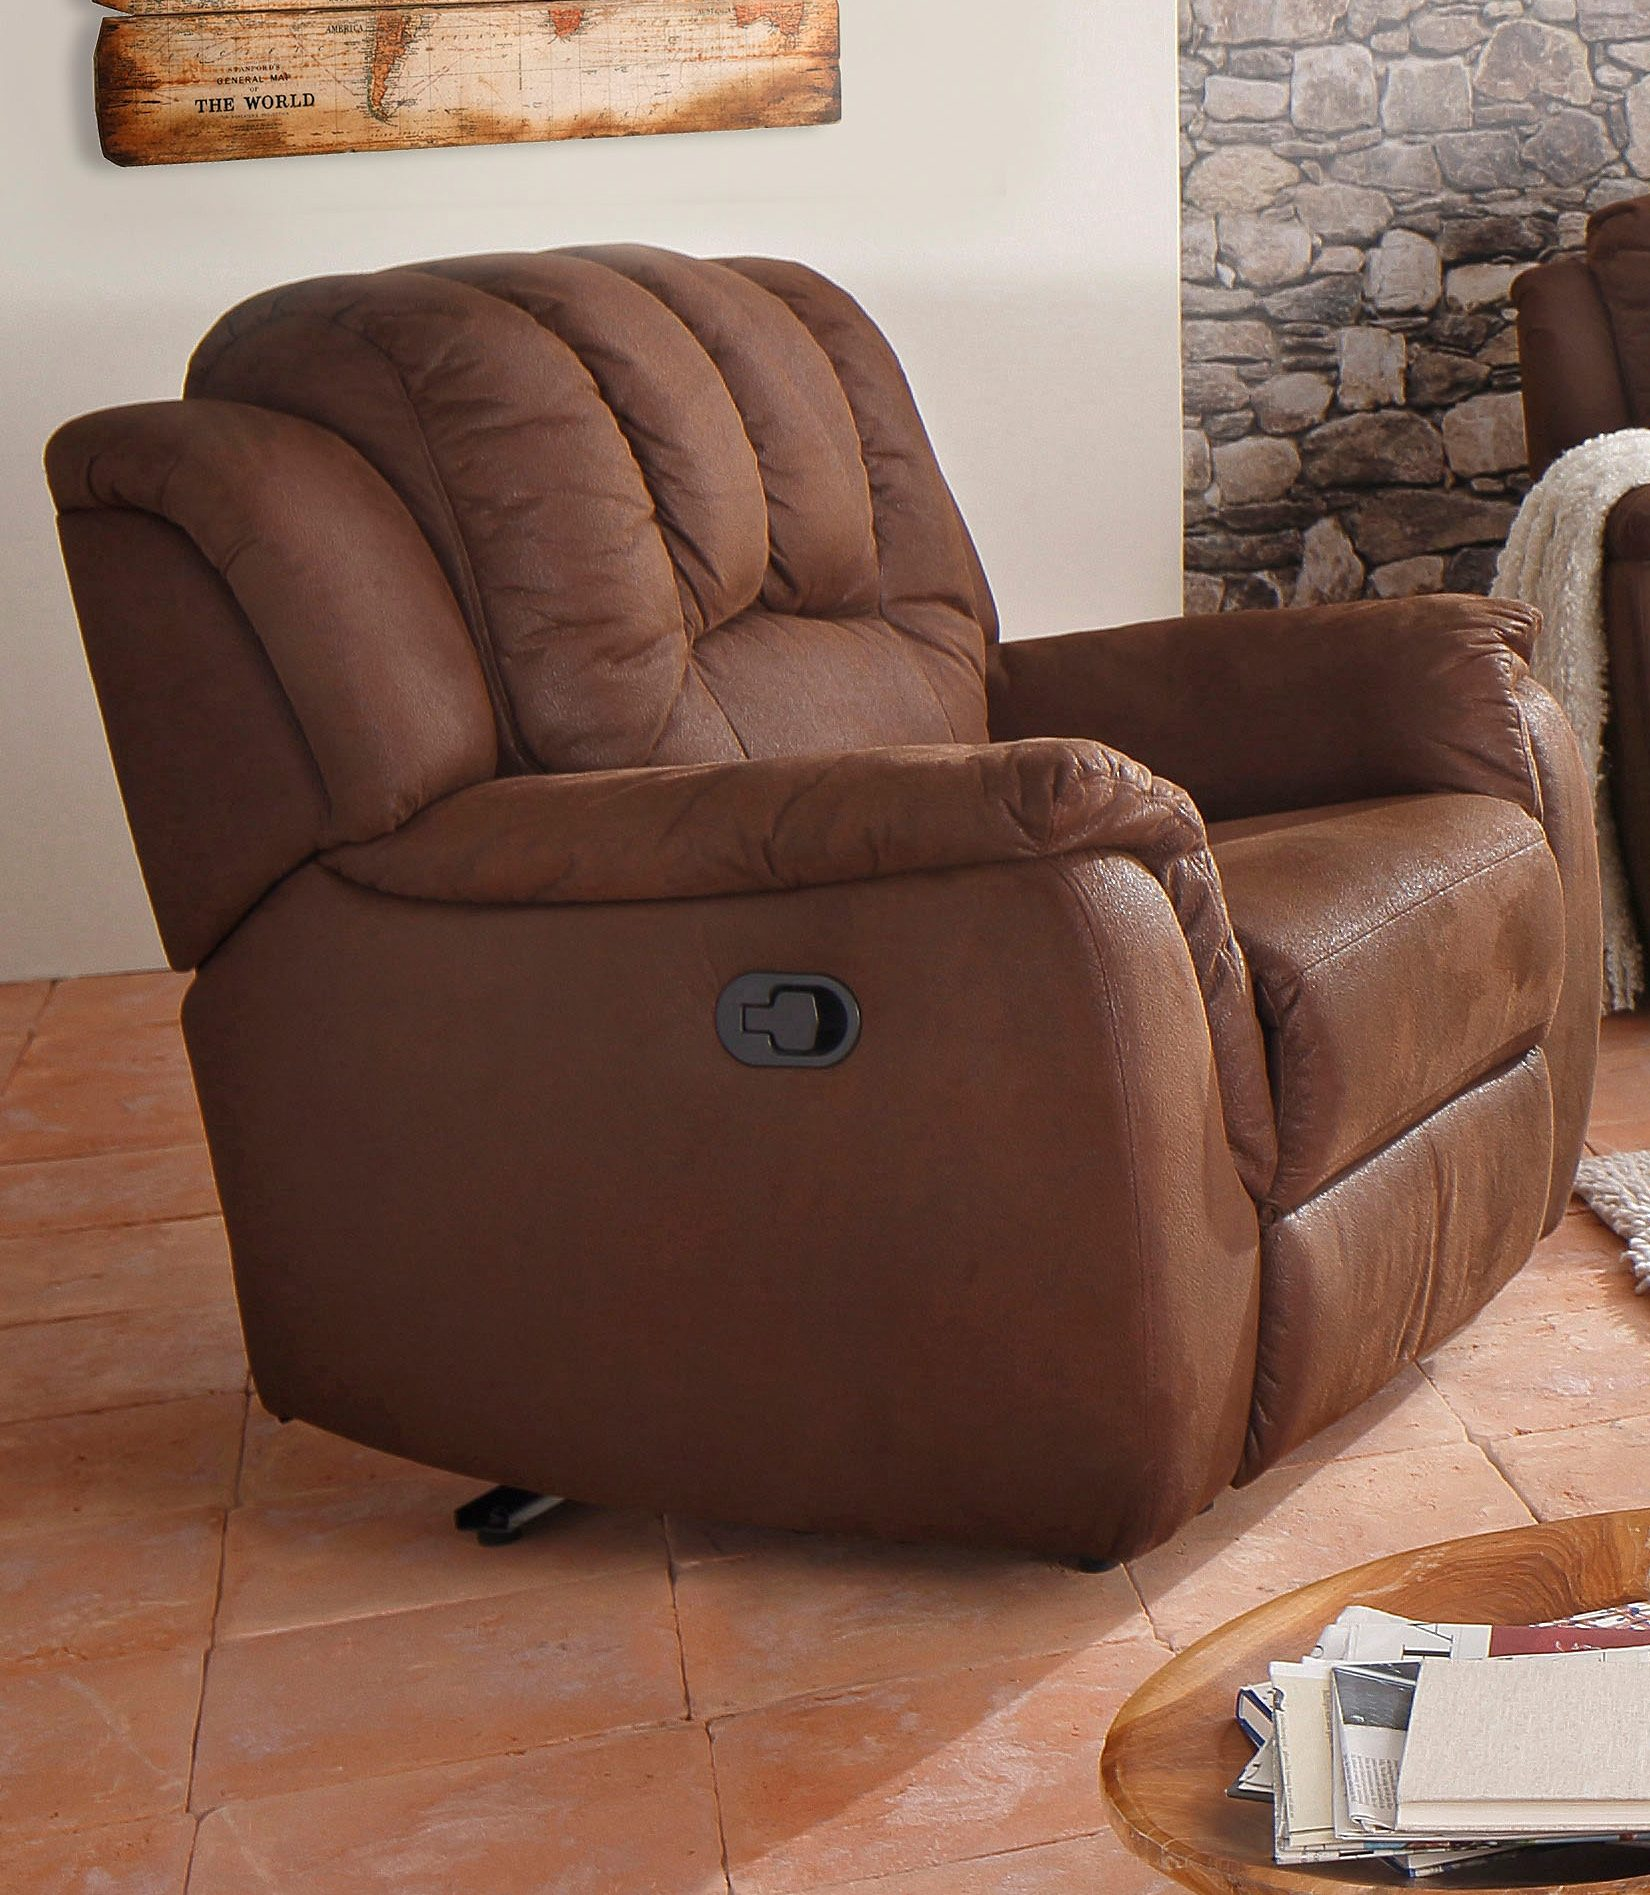 Big Chair Sessel Xxl Sessel Kaufen Big Sessel Megasessel Otto